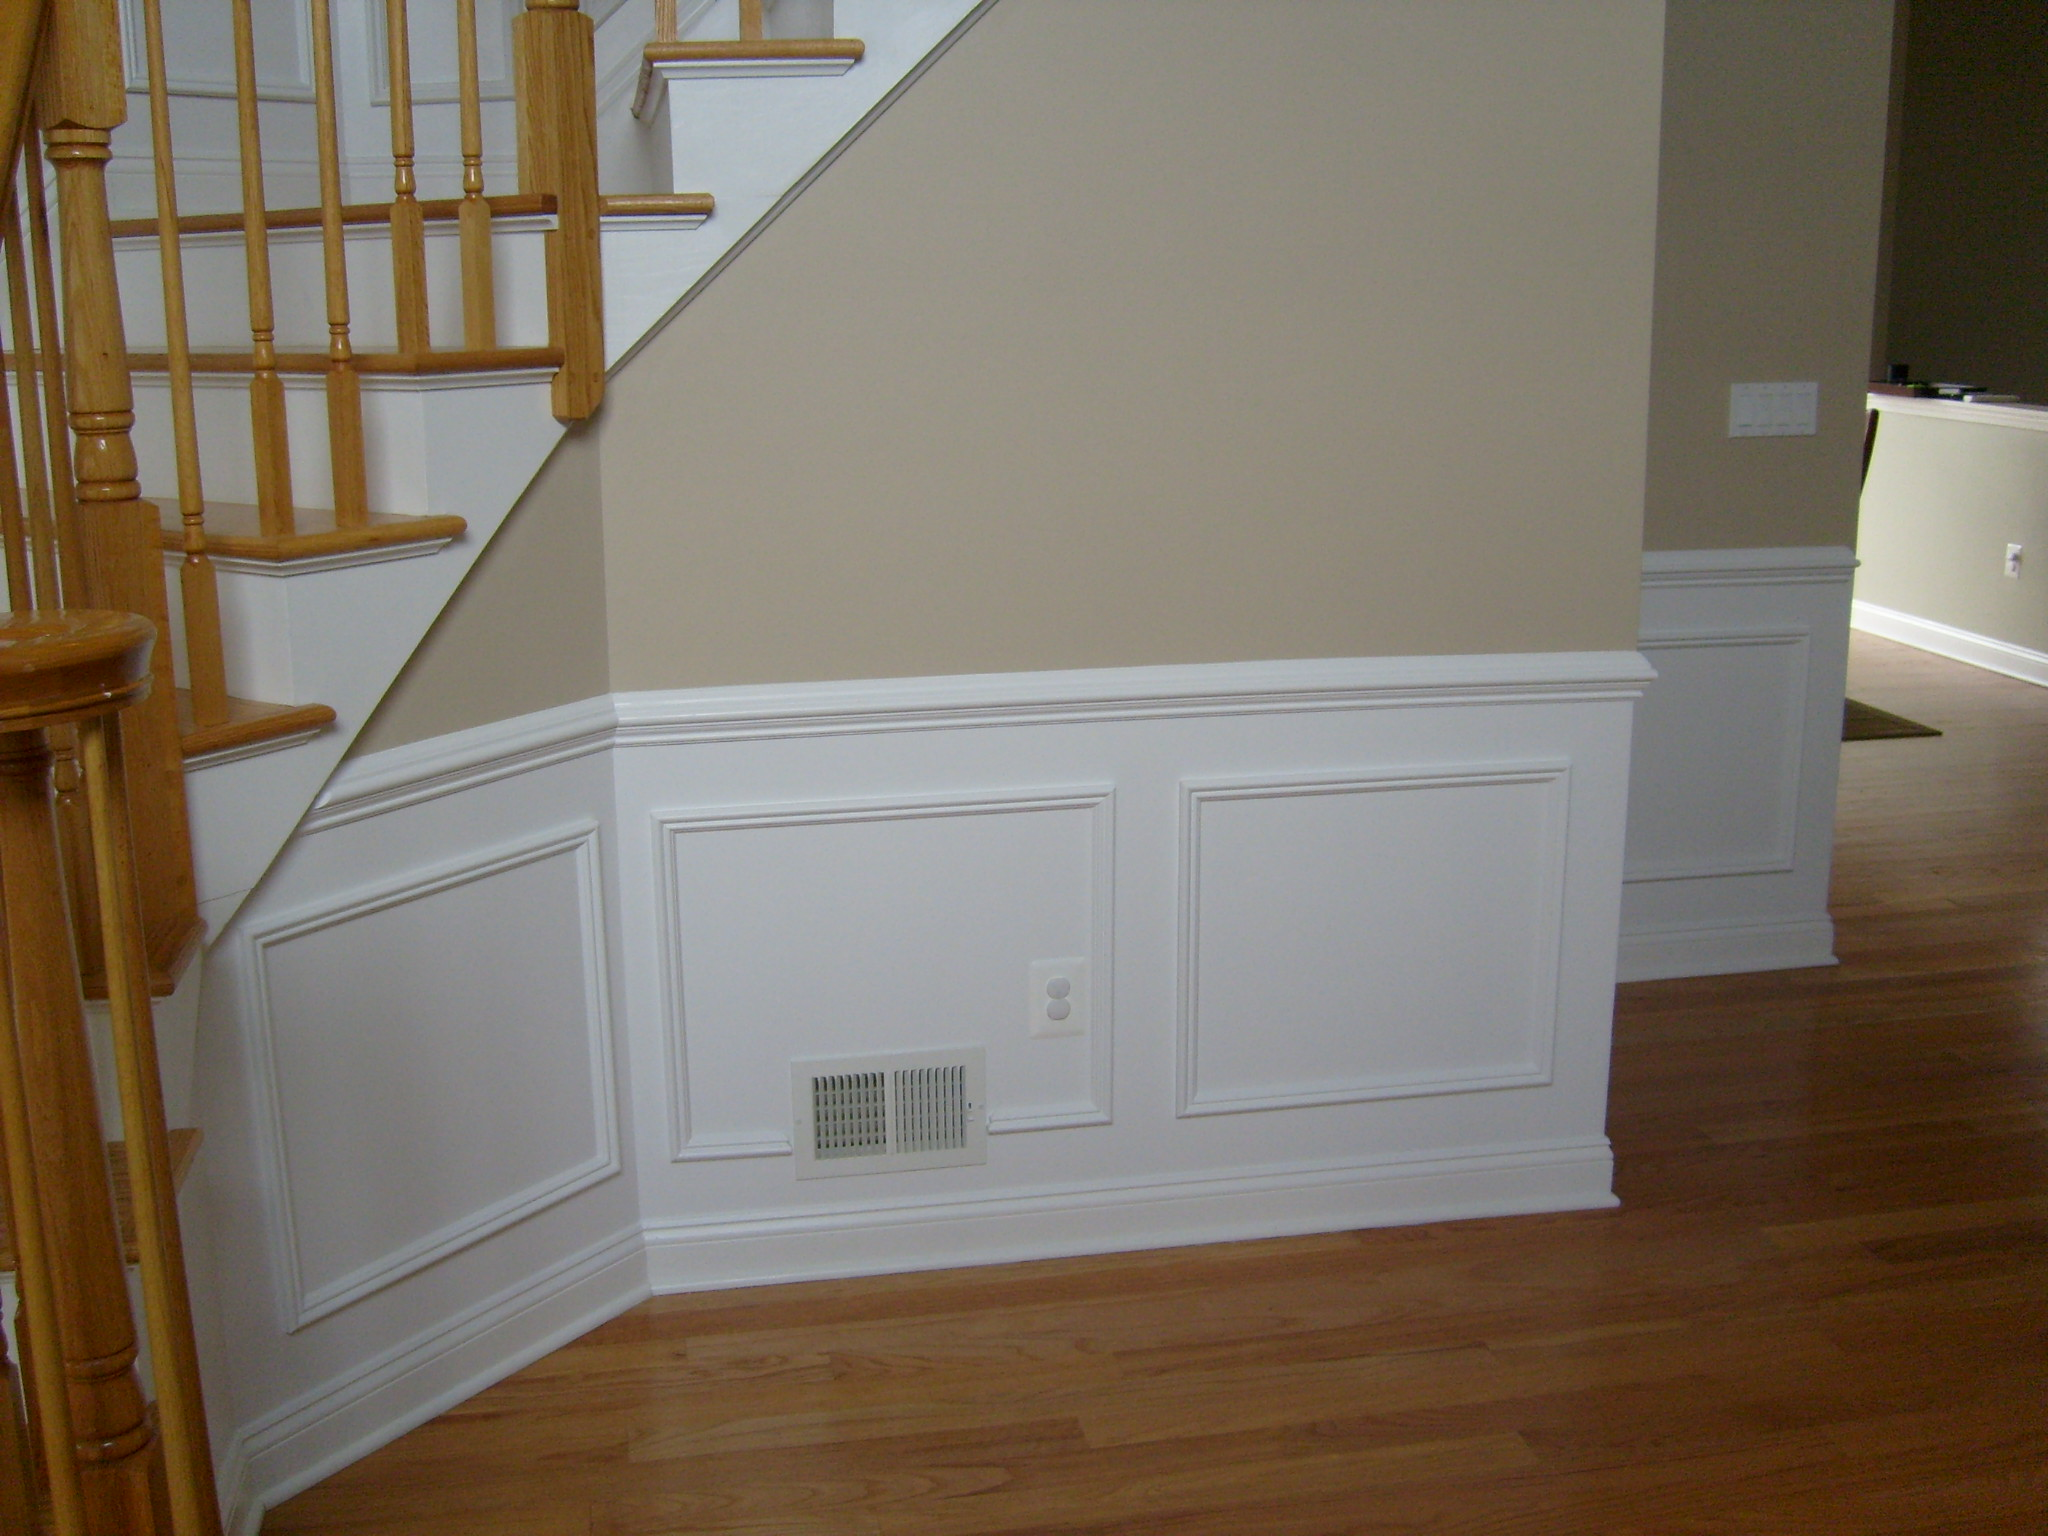 Perfect Decorative Mouldings, Moulding Pictures, Moldings, Crown Molding, Central  NJ, Jackson NJ, Freehold NJ, Monmouth NJ